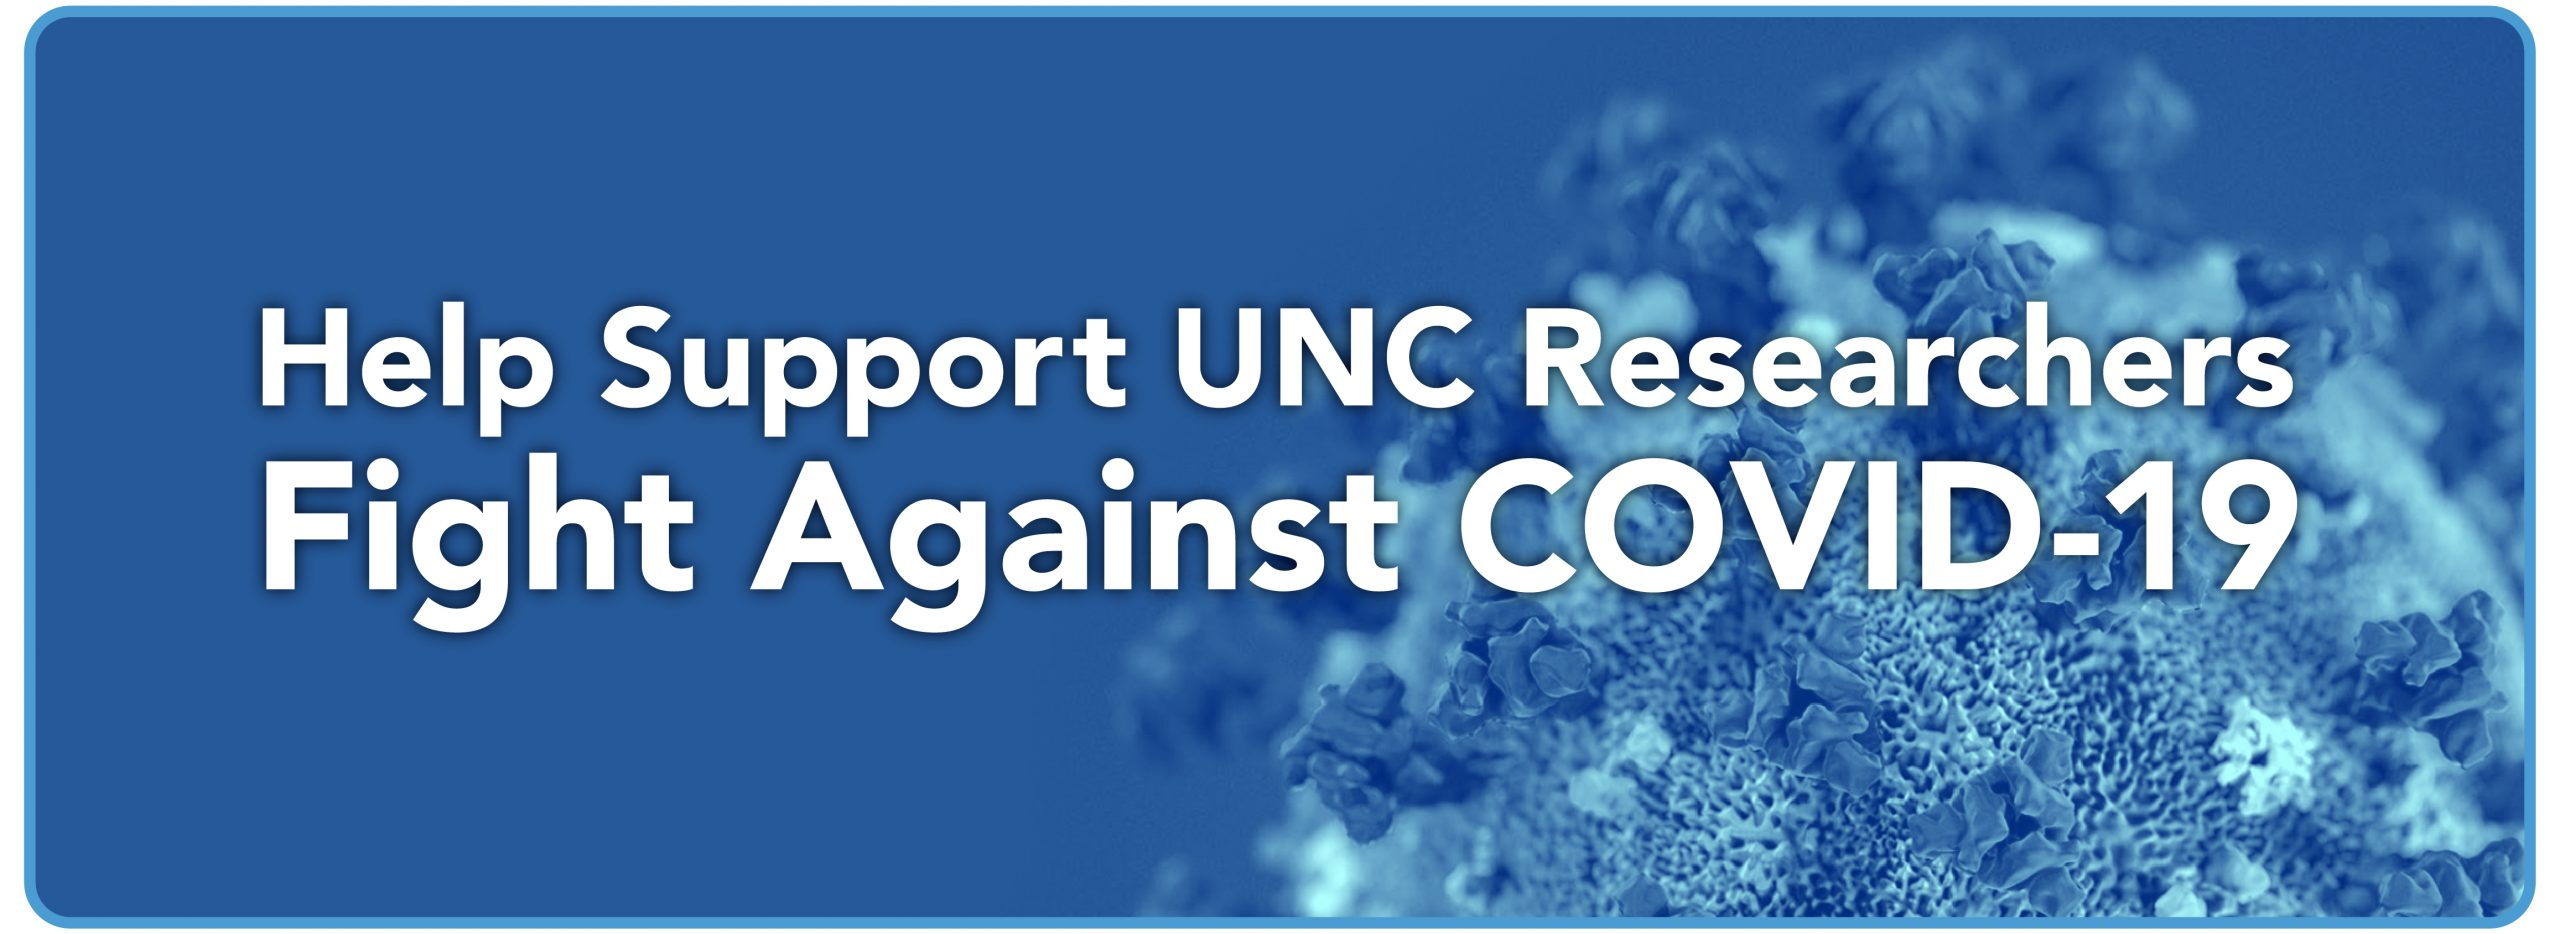 "Banner that says ""Help Support UNC Researchers Fight Against COVID-19"" Click to donate."